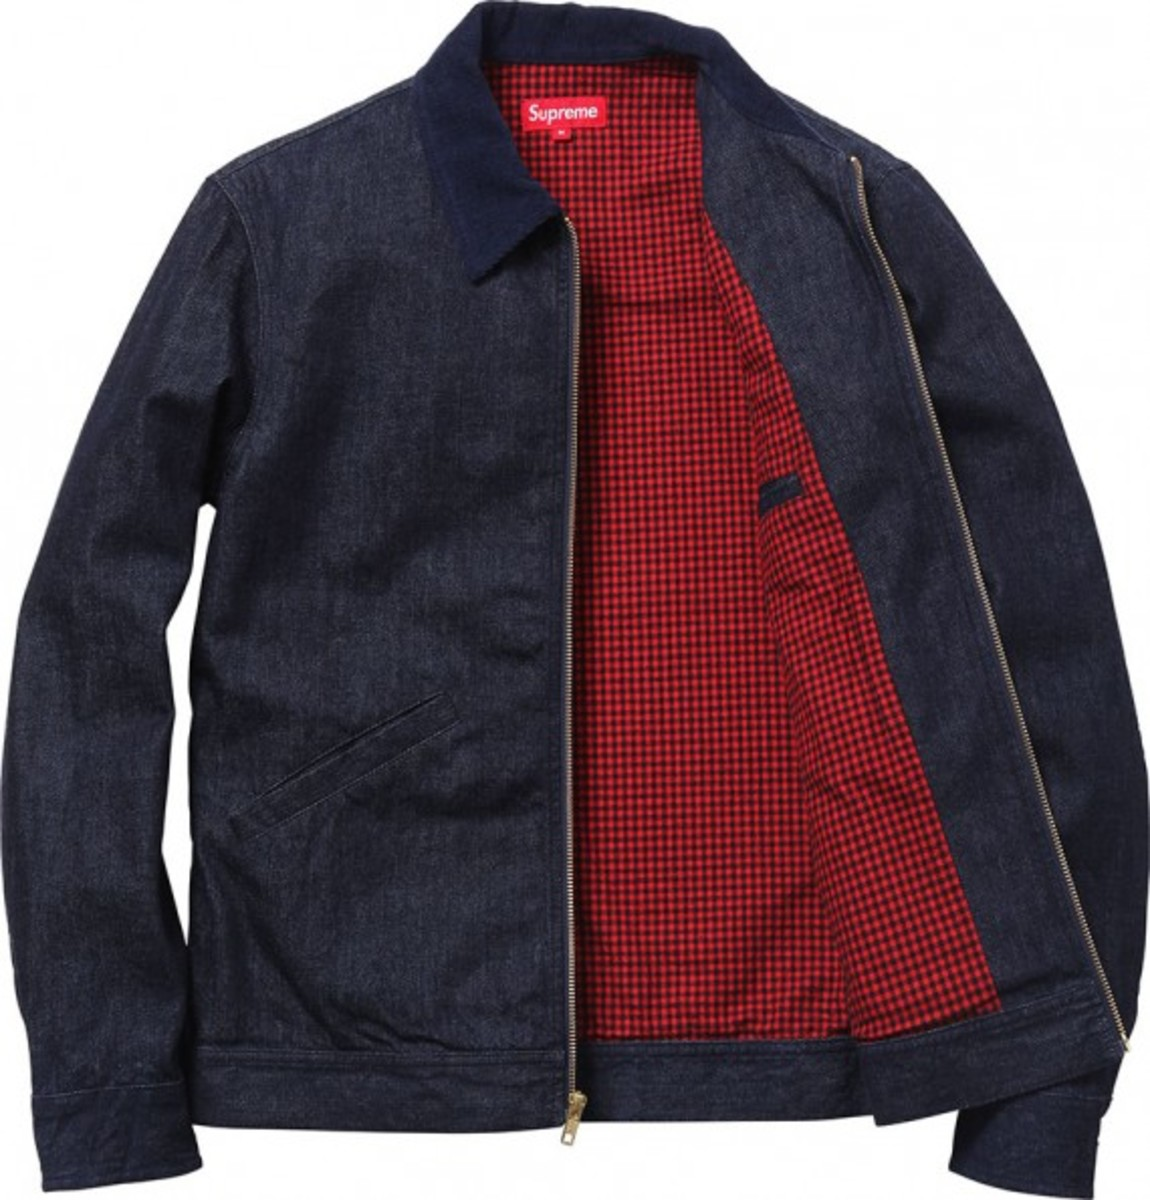 1-workers_jacket-zoom_1345455037